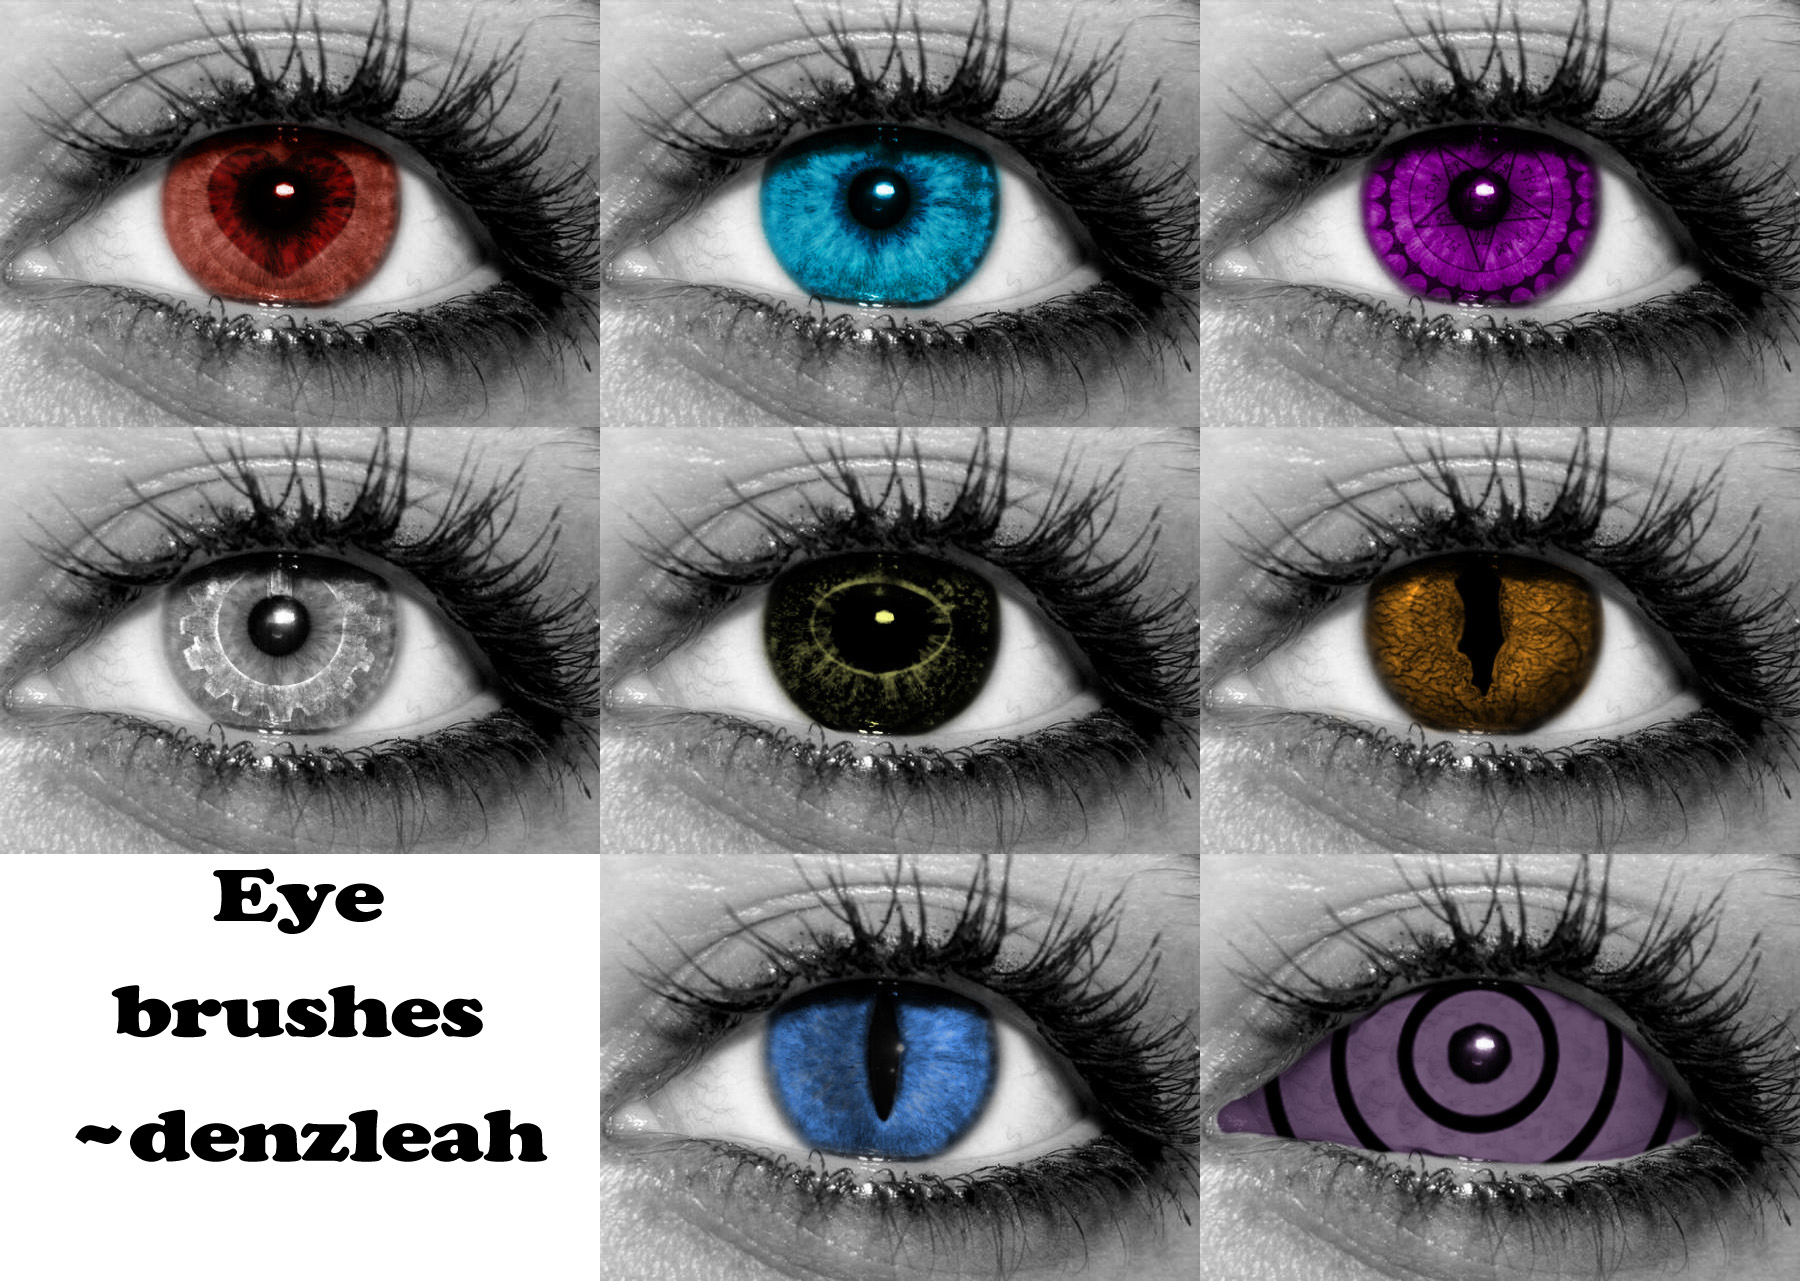 20 Circle Lens brushes by kexiakexia on DeviantArt